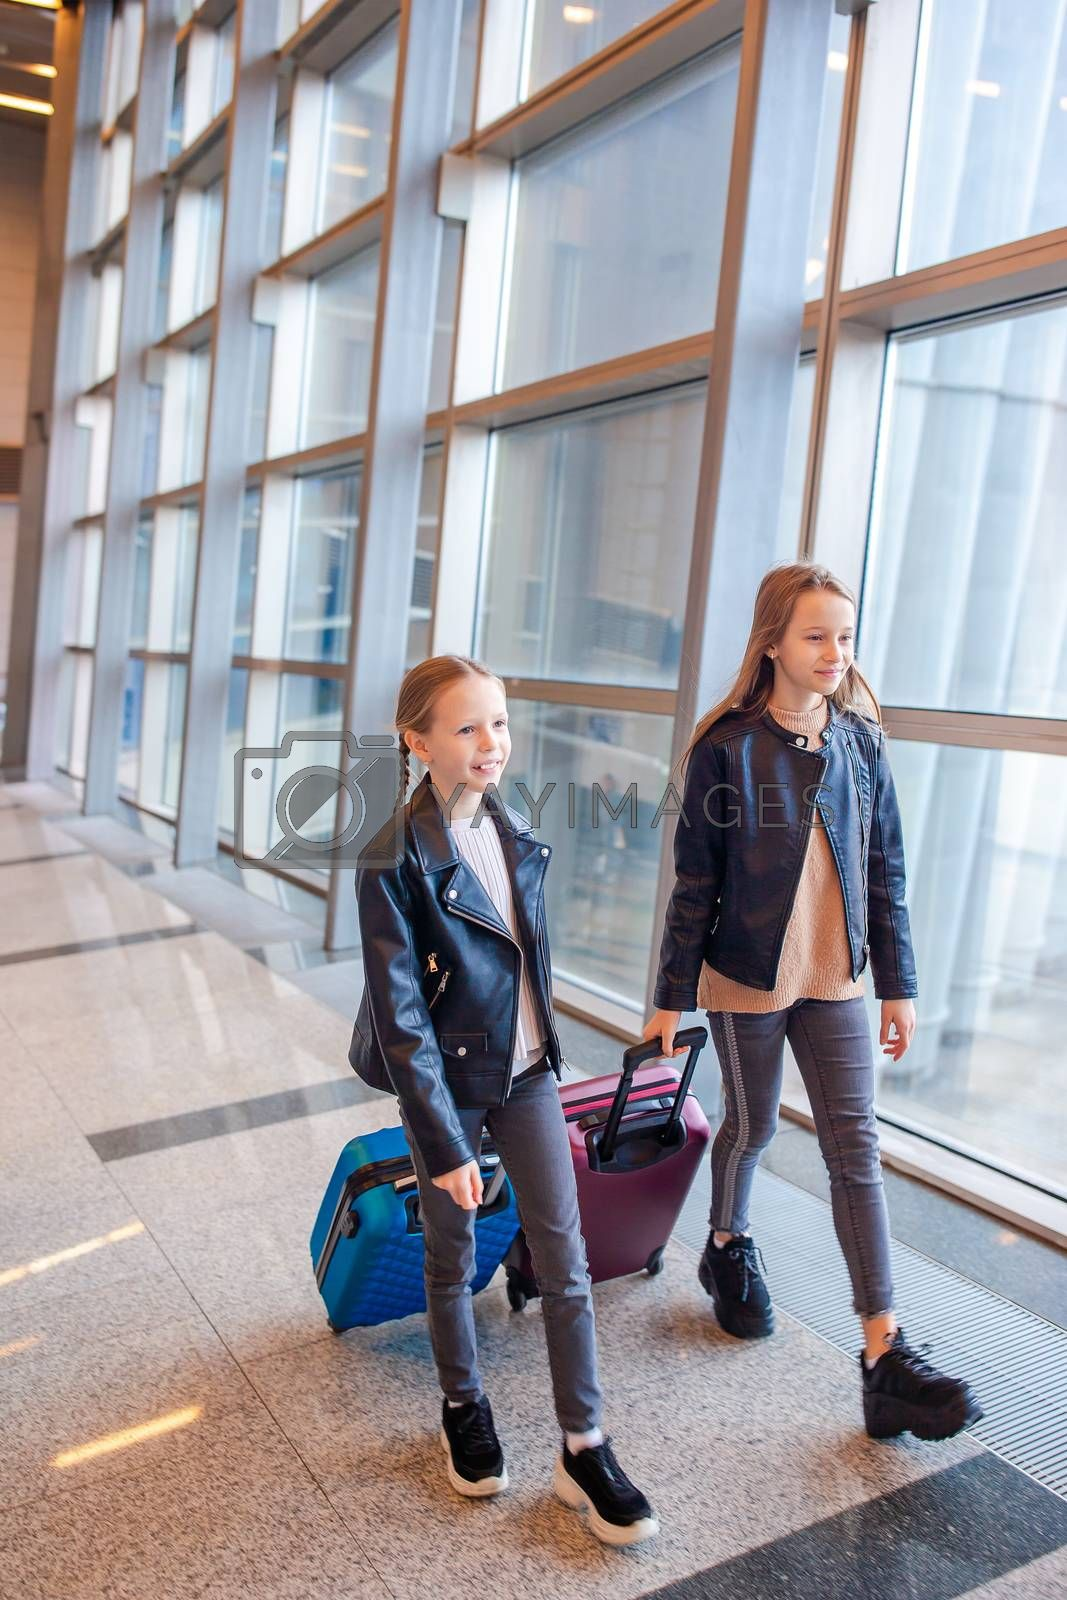 Little adorable kids in international airport waiting for boarding indoors